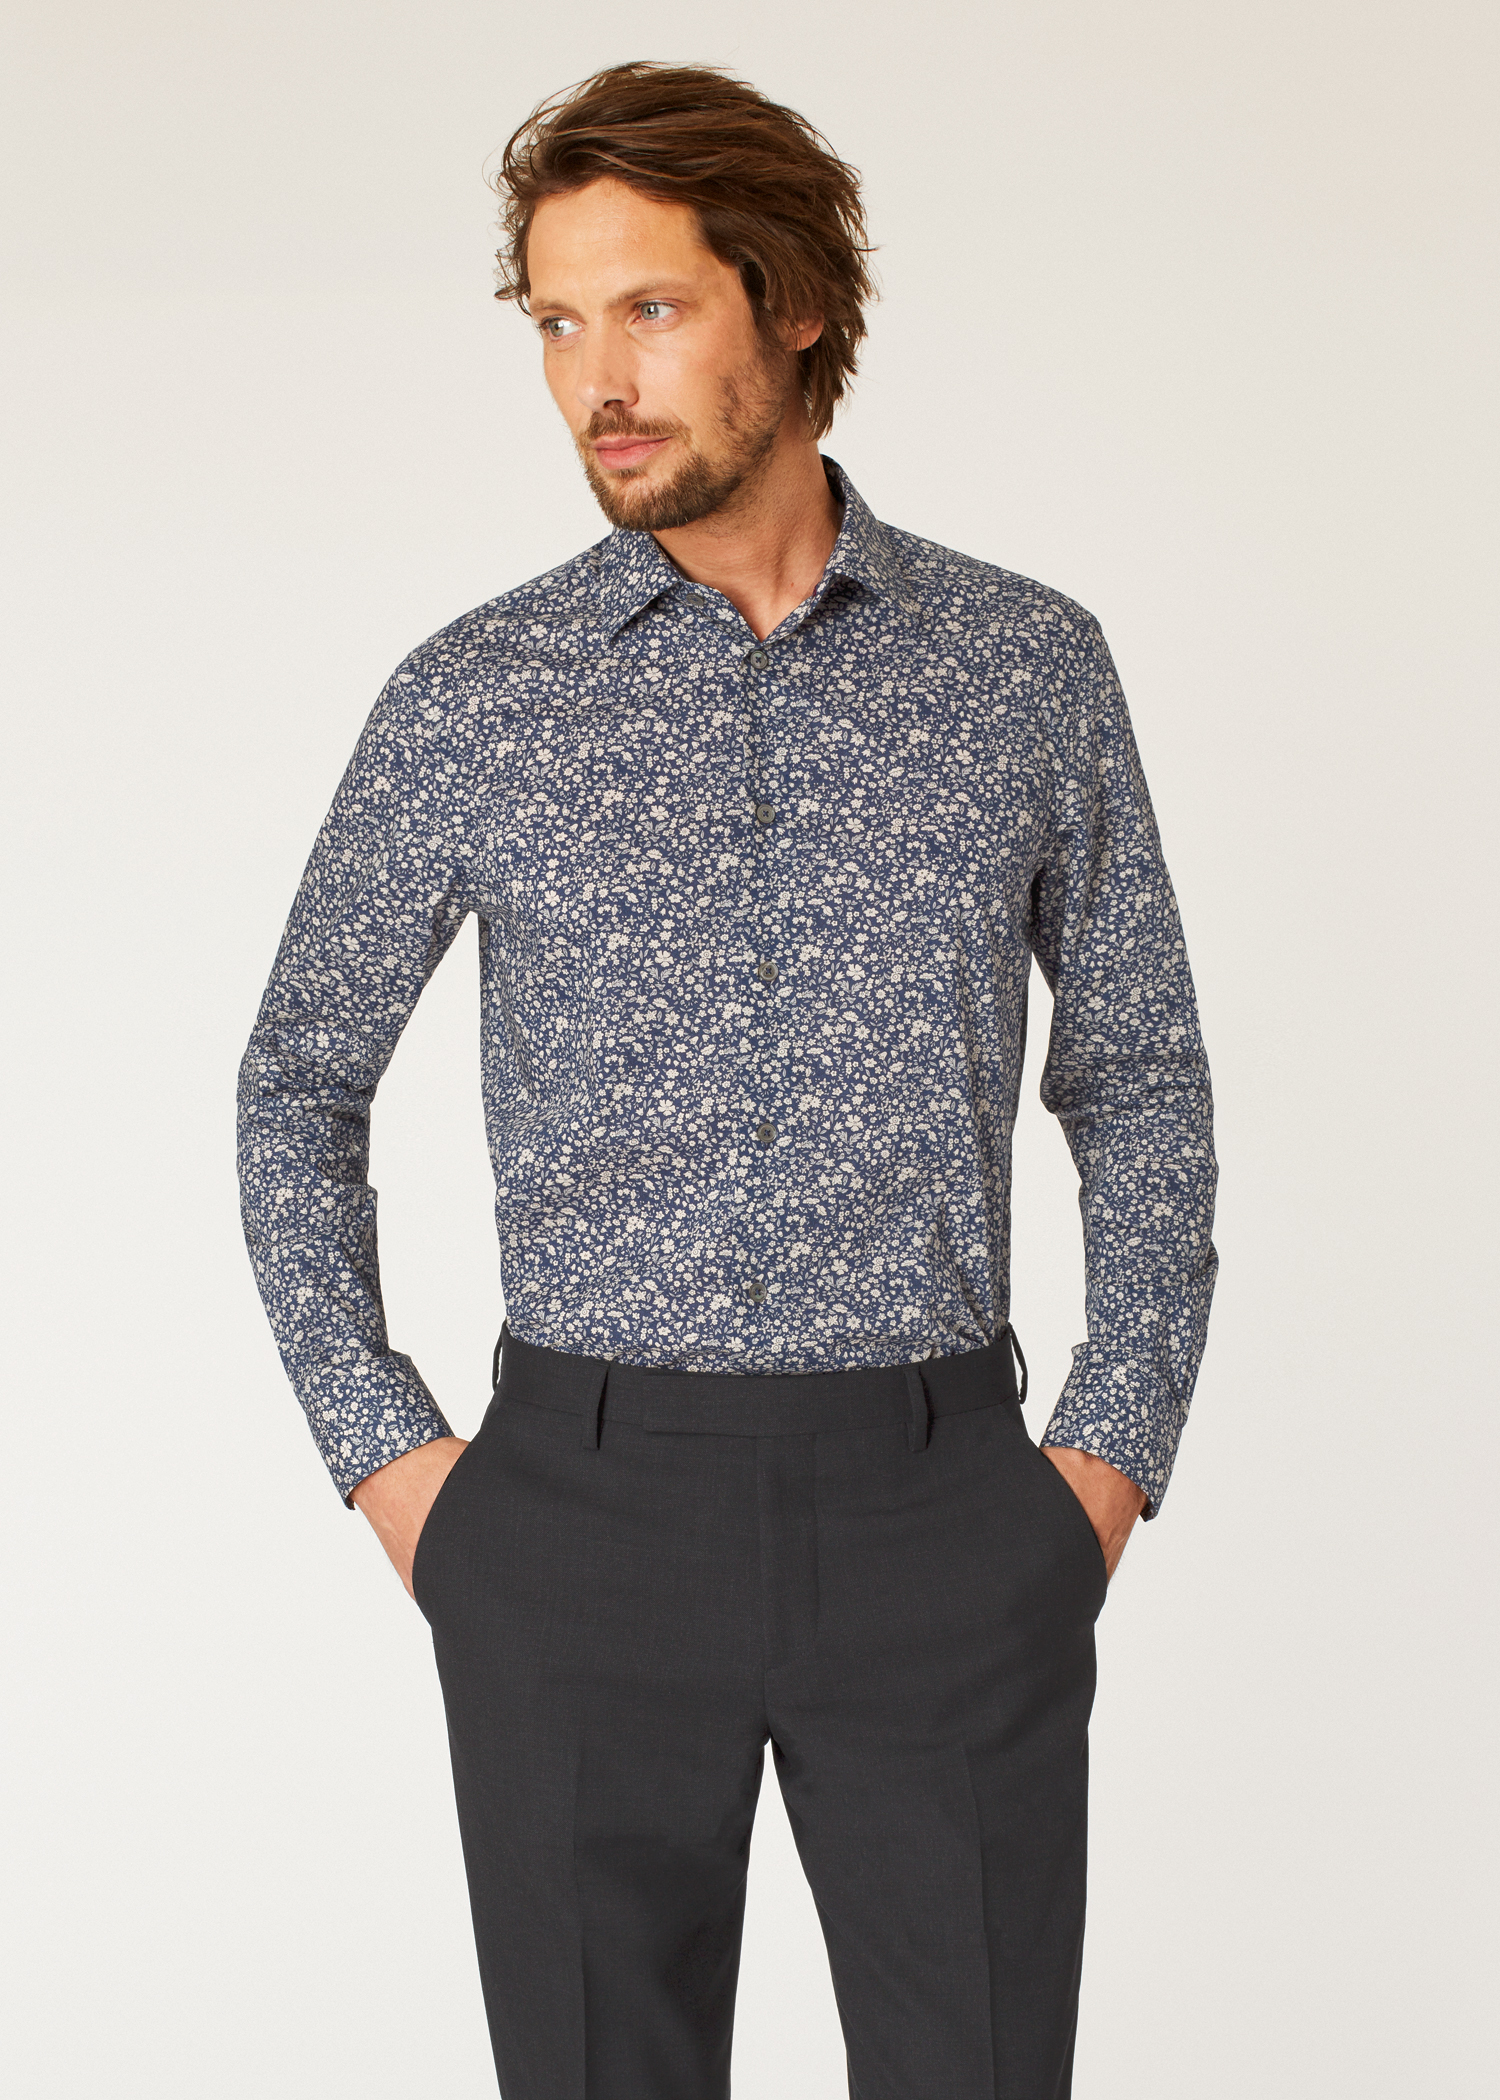 df9fe19d89e Model front close up- Men s Tailored-Fit Navy Liberty Floral Print Shirt  Paul Smith